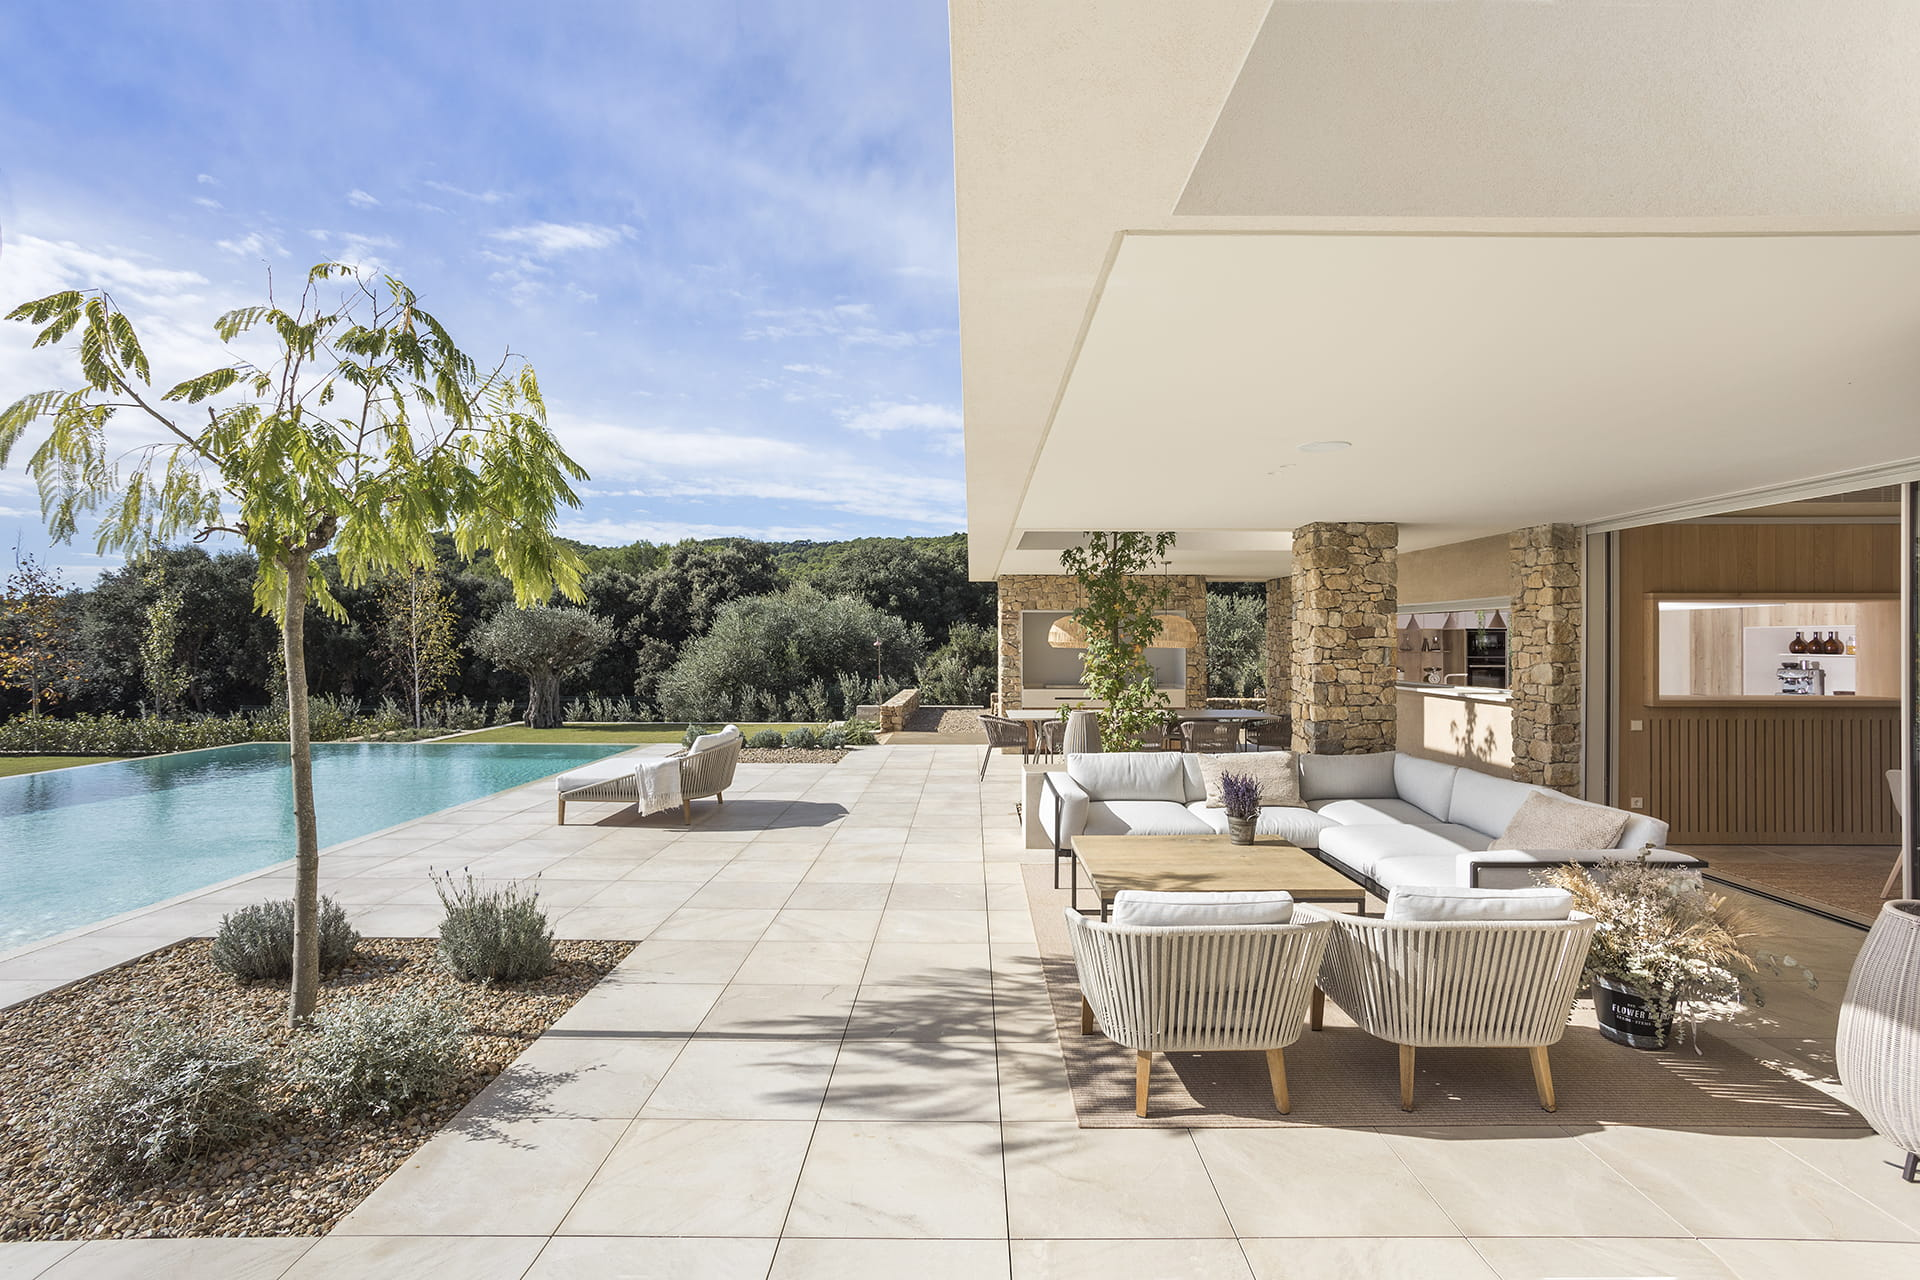 Living area and outdoor barbecue in home with pool